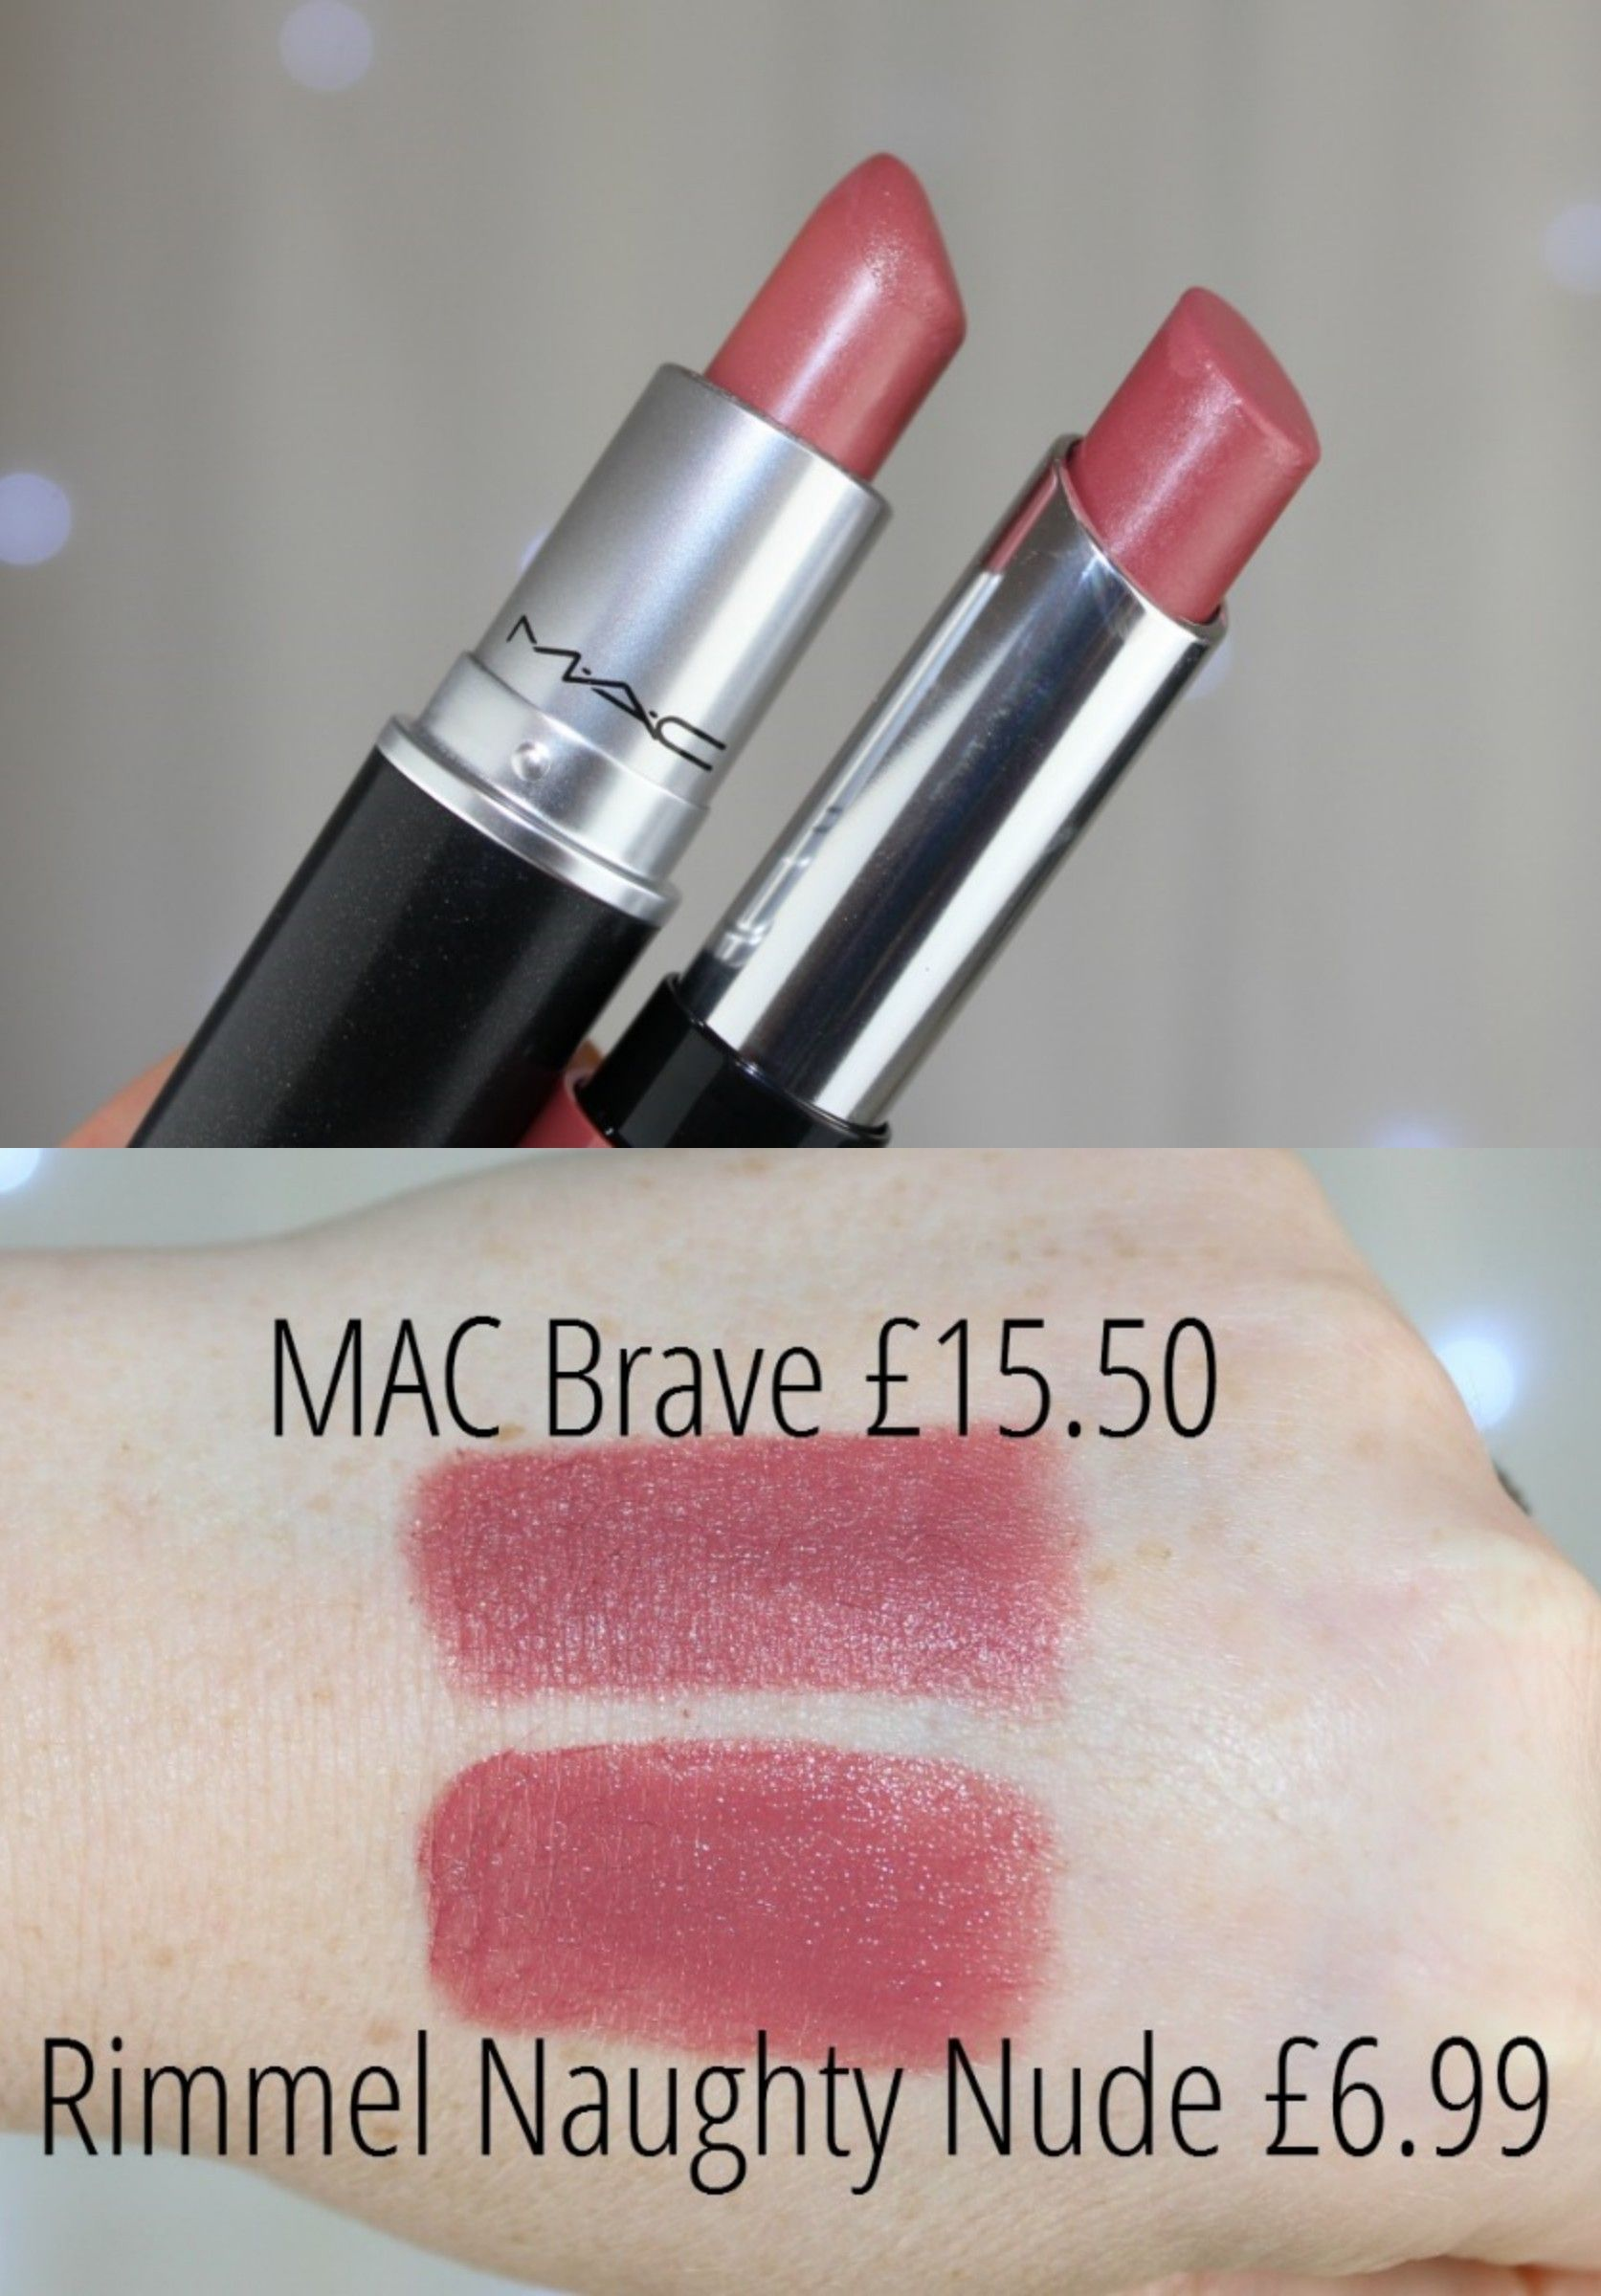 MAC Brave Dupe | Dupes | Pinterest | MAC brave, Dupes and Macs